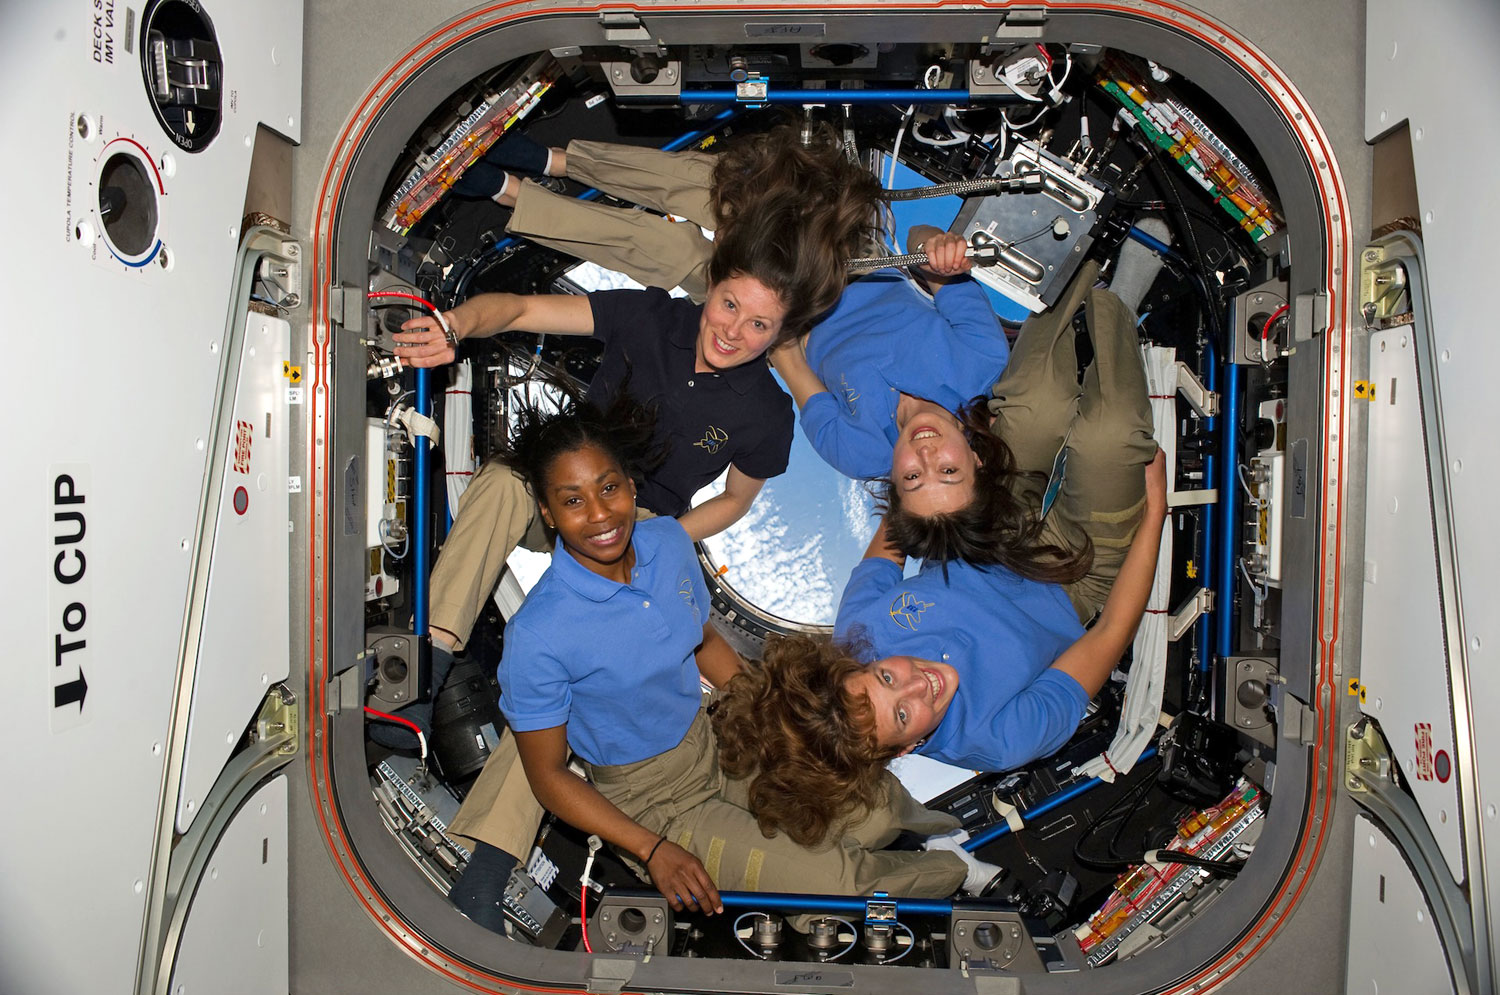 The greatest number of women in space at any one time was four, in 2010. From lower right: NASA astronauts Dorothy Metcalf-Lindenburger, Stephanie Wilson, Tracy Caldwell Dyson, and Japan Aerospace Exploration Agency (JAXA) astronaut Naoko Yamazaki on the International Space Station in the Cupola.